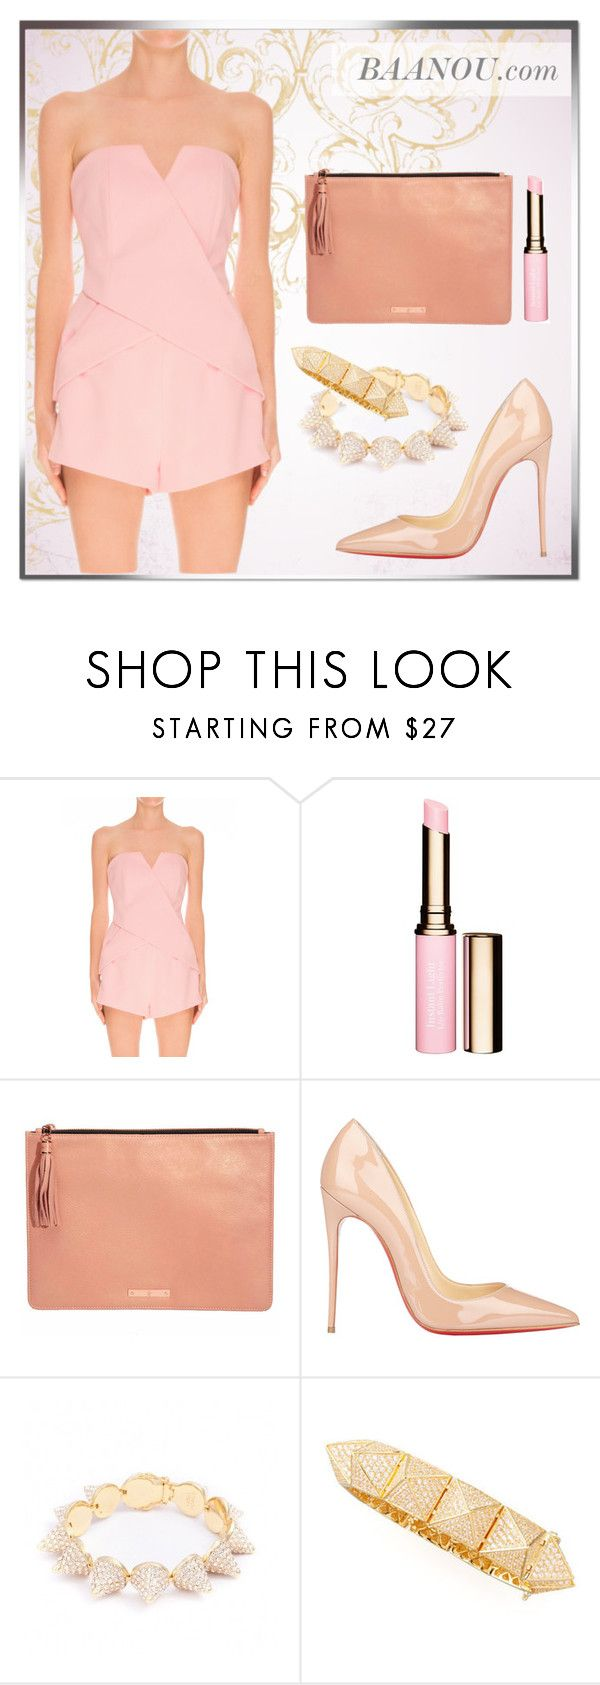 """""""In Between Days Playsuit"""" by baanou ❤ liked on Polyvore featuring Finders Keepers, Clarins, Christian Louboutin and Eddie Borgo"""